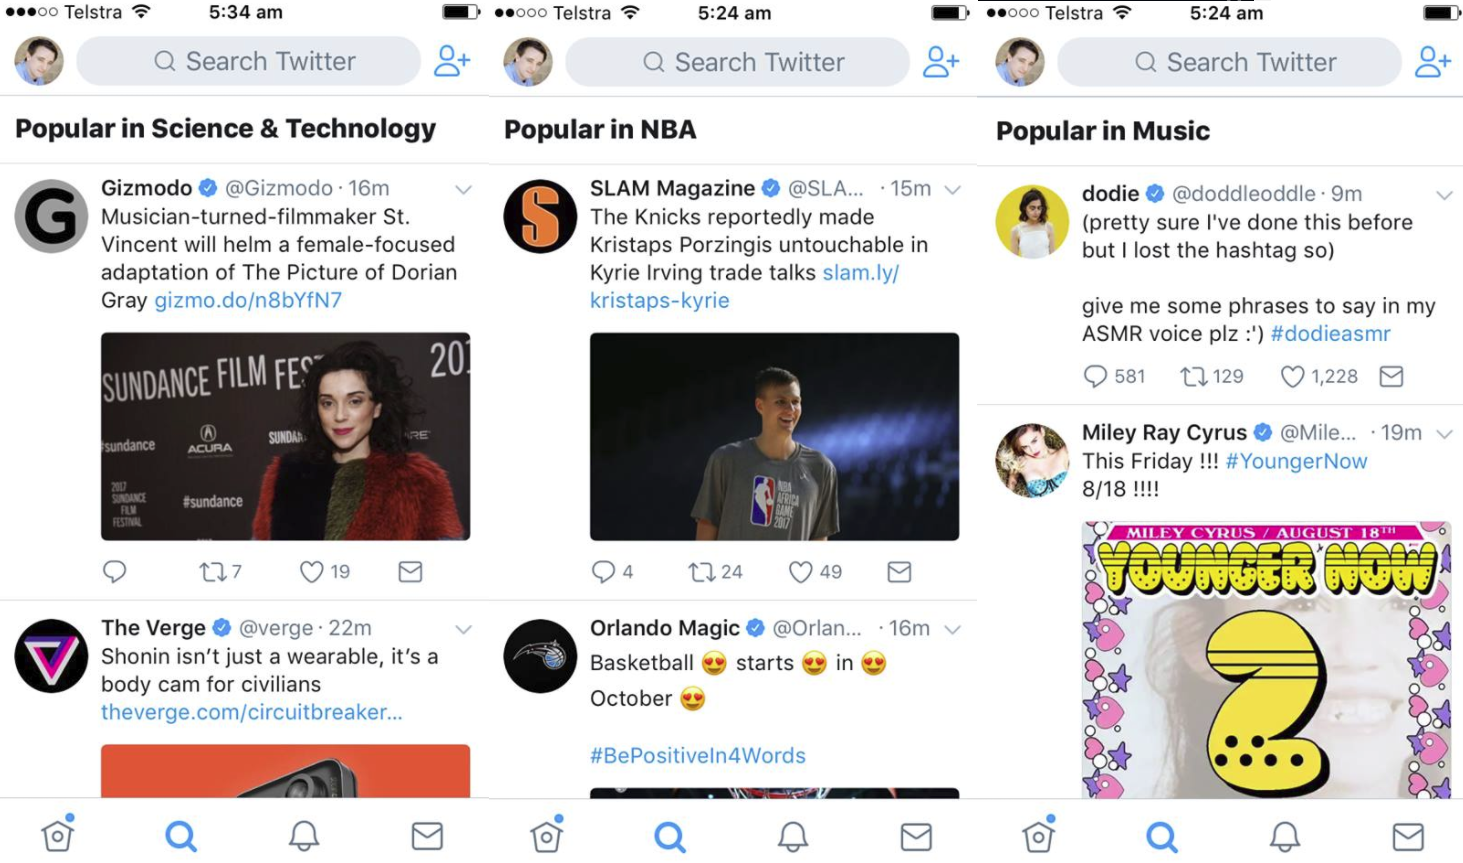 Twitter's Timeline is Becoming More Algorithm-Influenced - Here's How to Take Advantage | Social Media Today